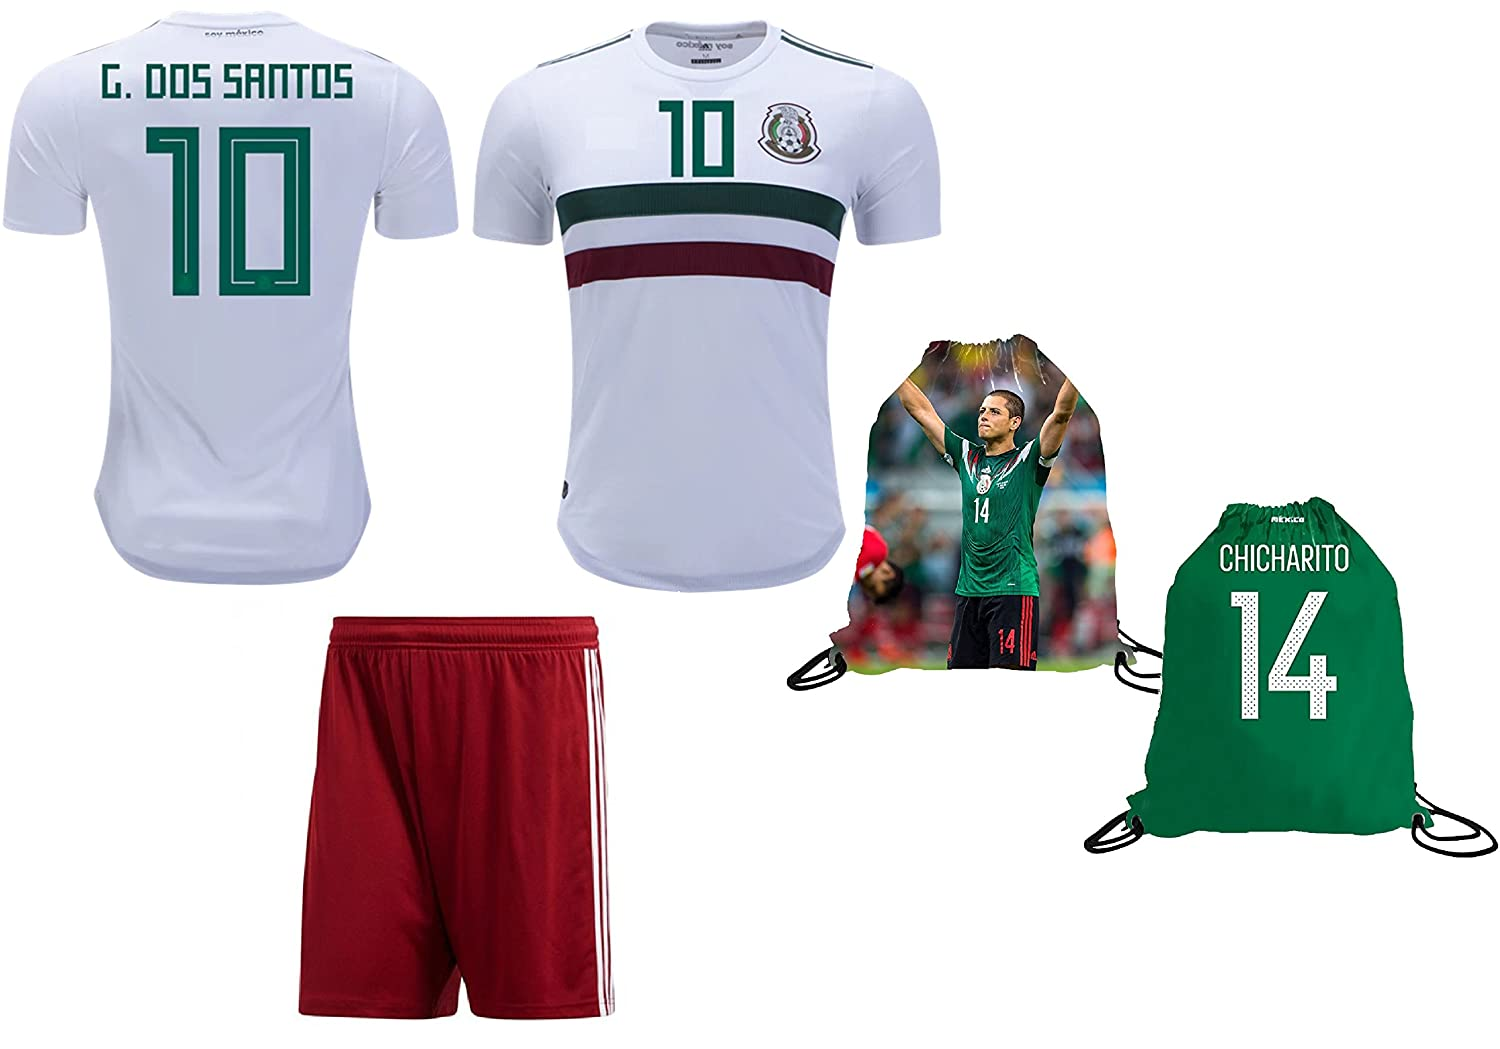 8560ede8881 Amazon.com : Mexico Dos Santos #10 Soccer Jersey & Shorts Away World Cup  Youth Kids Sizes Premium Gift ✓ GIFT PACKAGING Soccer Backpack (YL 10-13  Years, ...